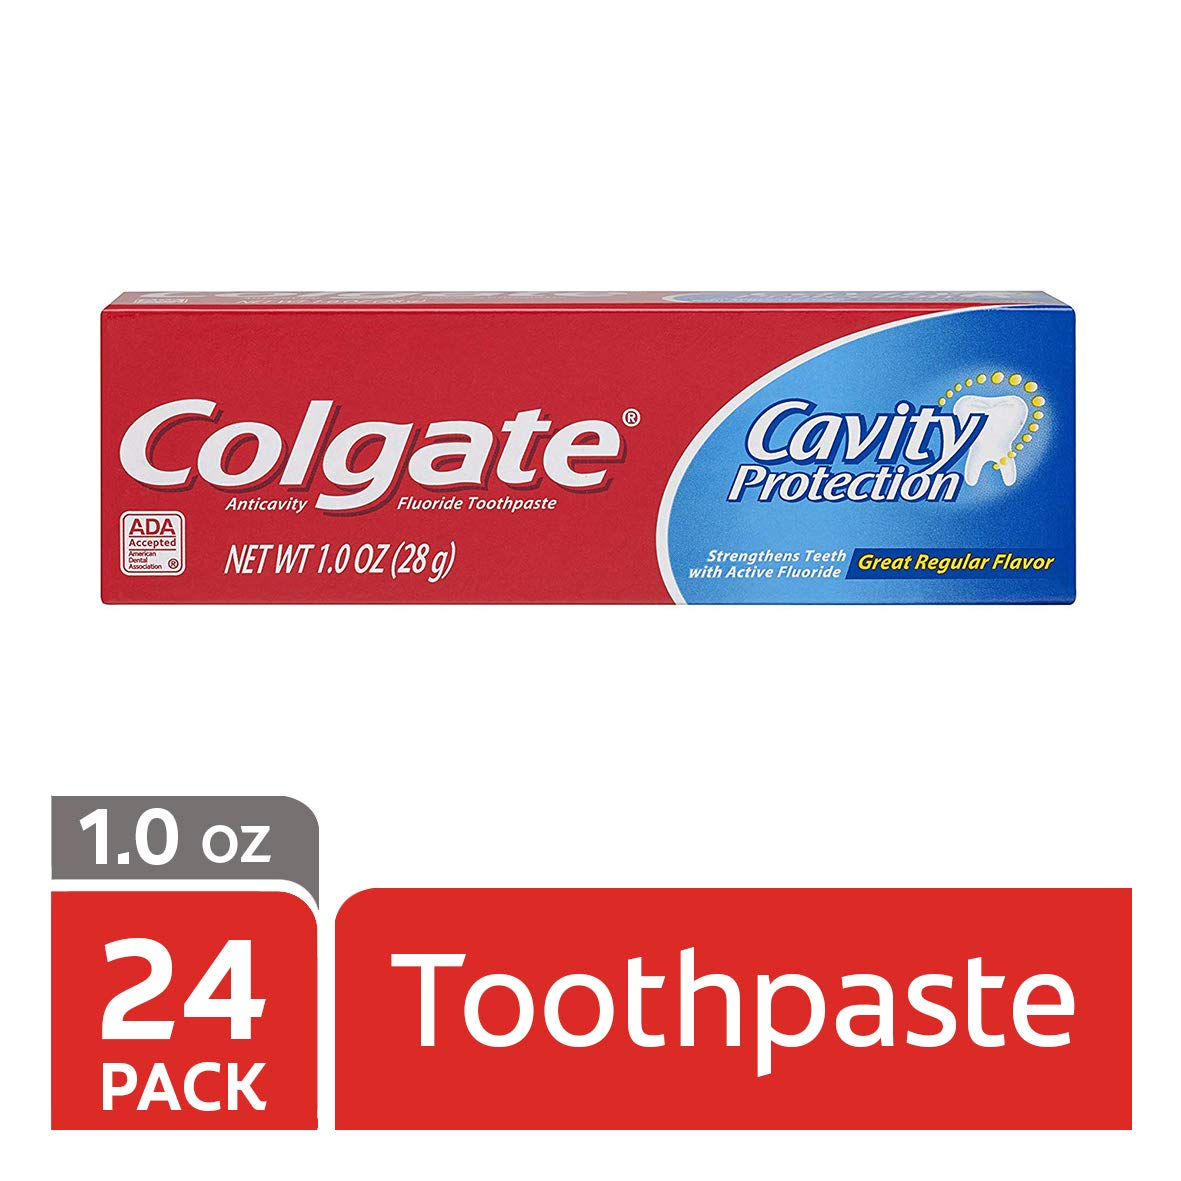 Colgate Cavity Protection Toothpaste with Fluoride - 1 Ounce (Pack of 24)